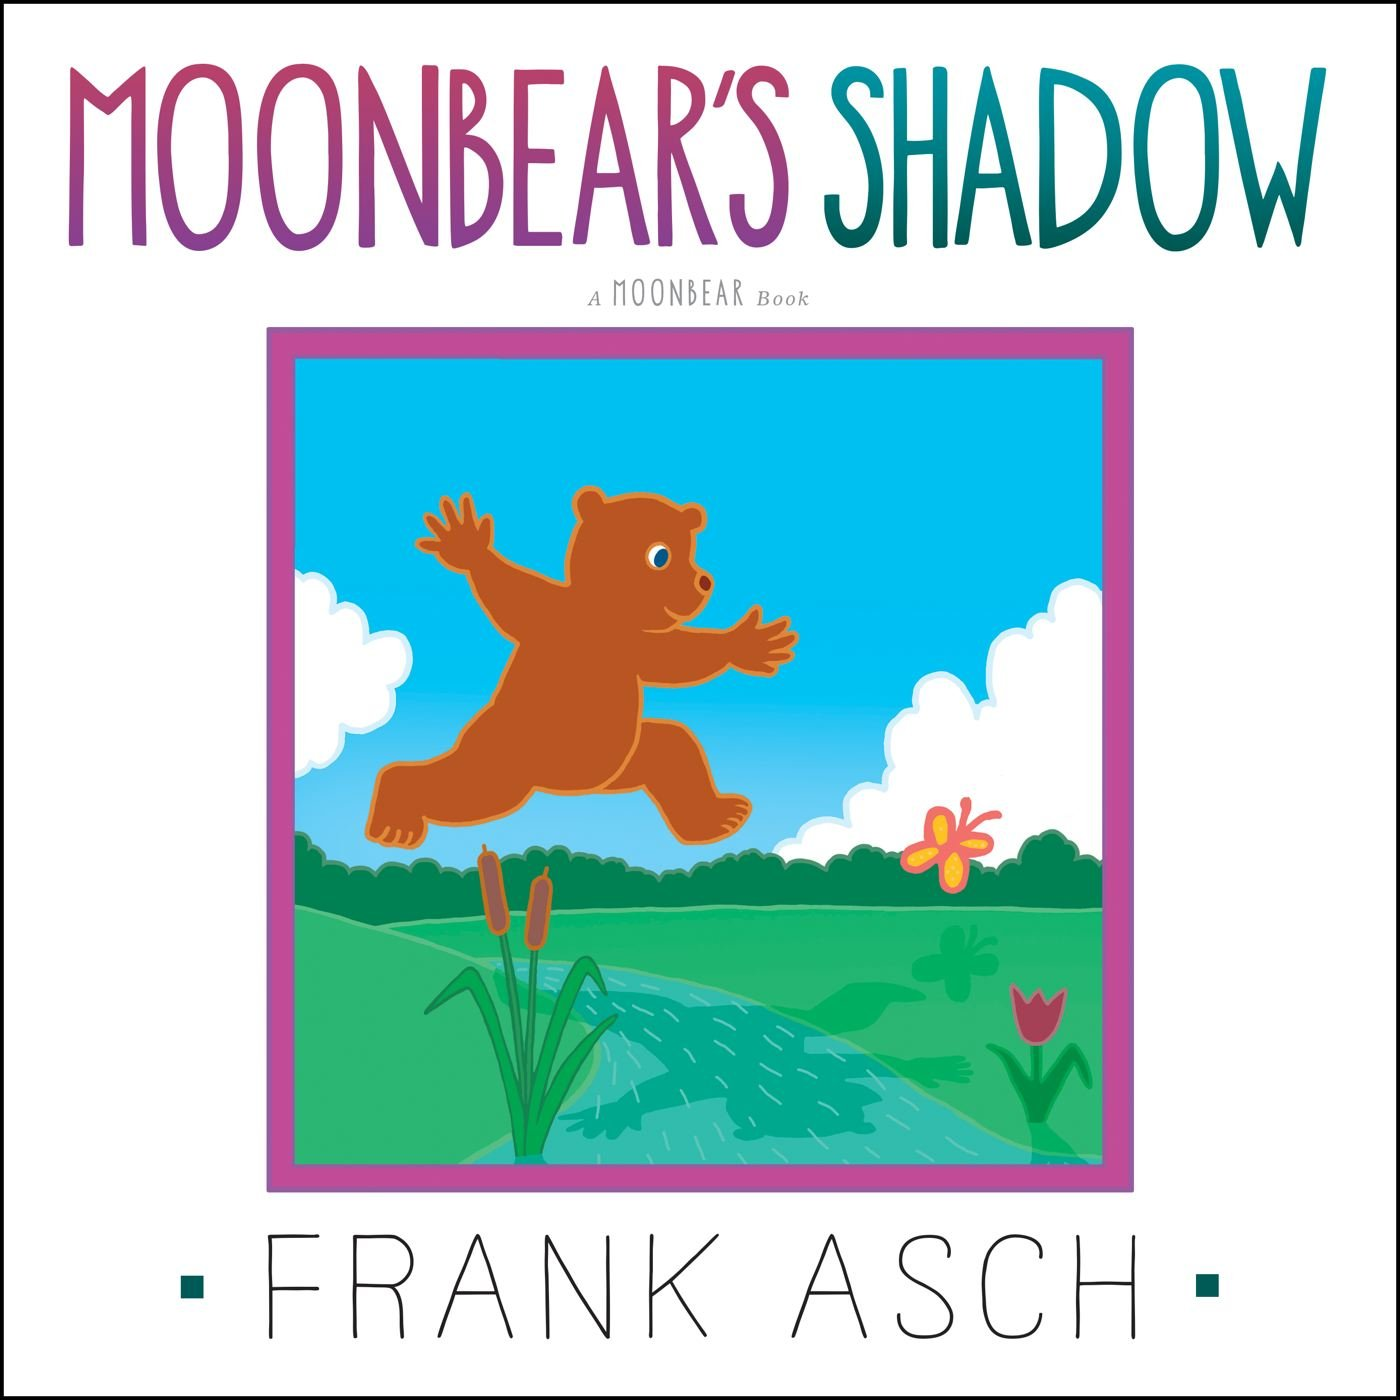 Moonbear's Shadow: Asch, Frank, Asch, Frank: 9781442494268: Amazon ...